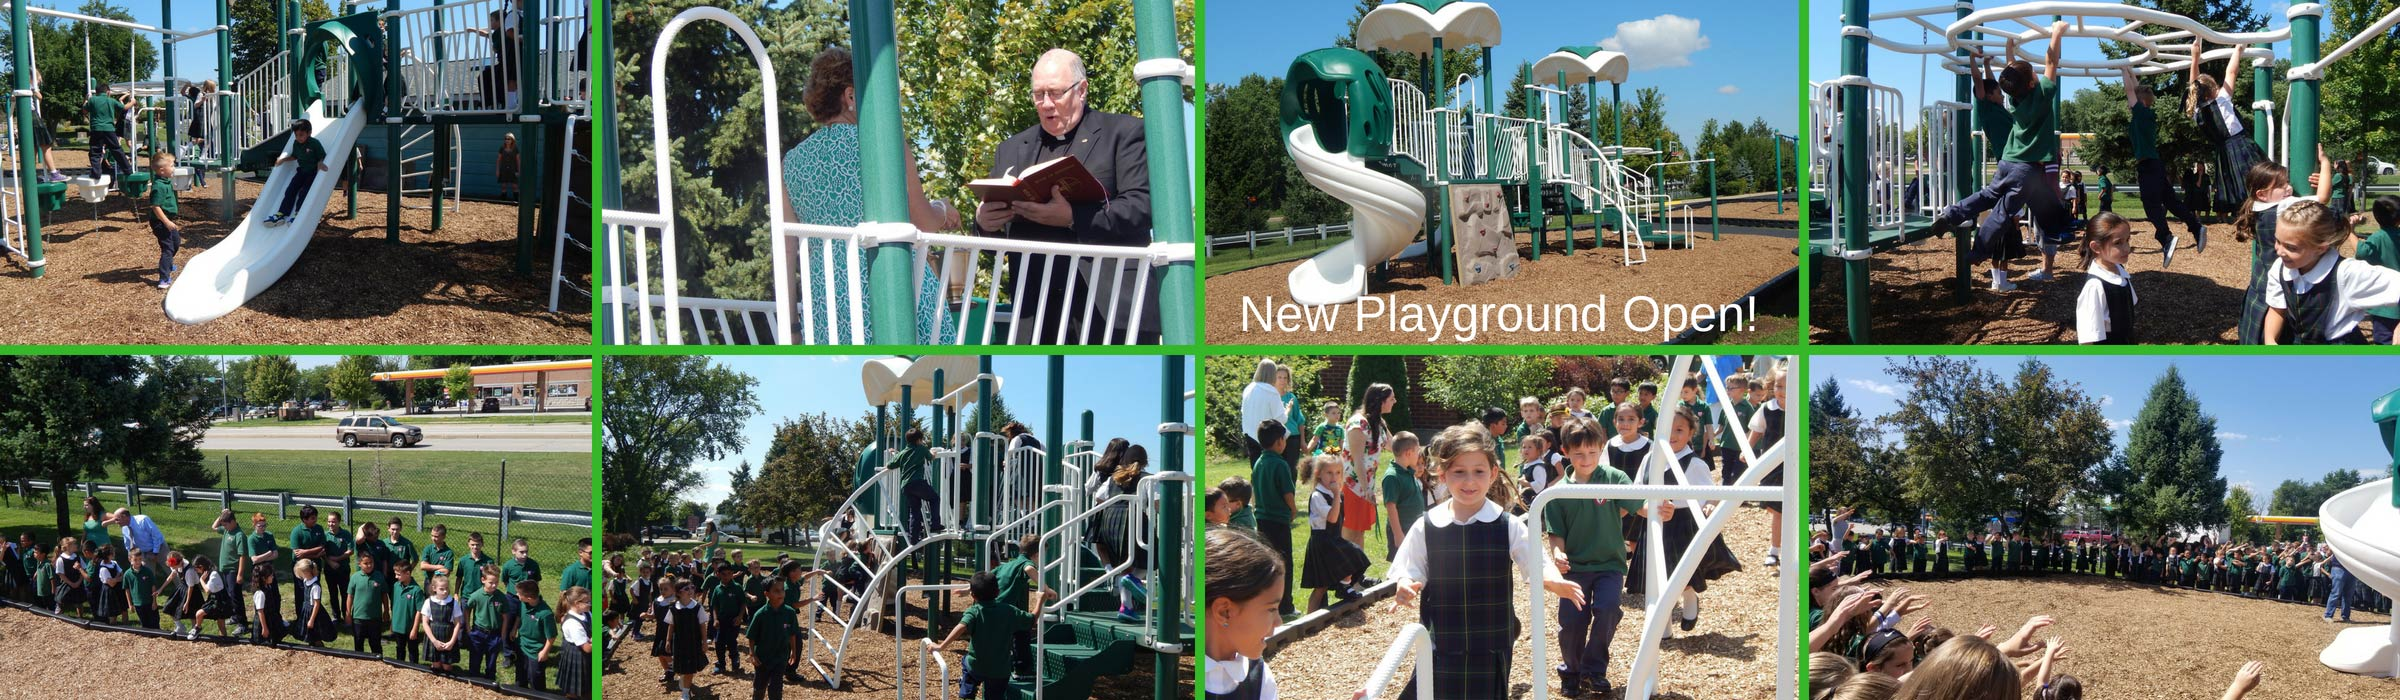 New-Playground-Open!